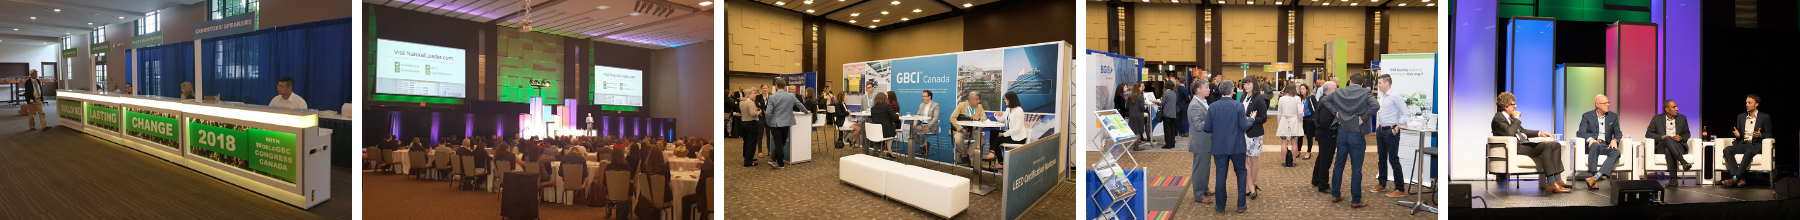 Venue West Conference Services - Past Events - CaGBC 2018